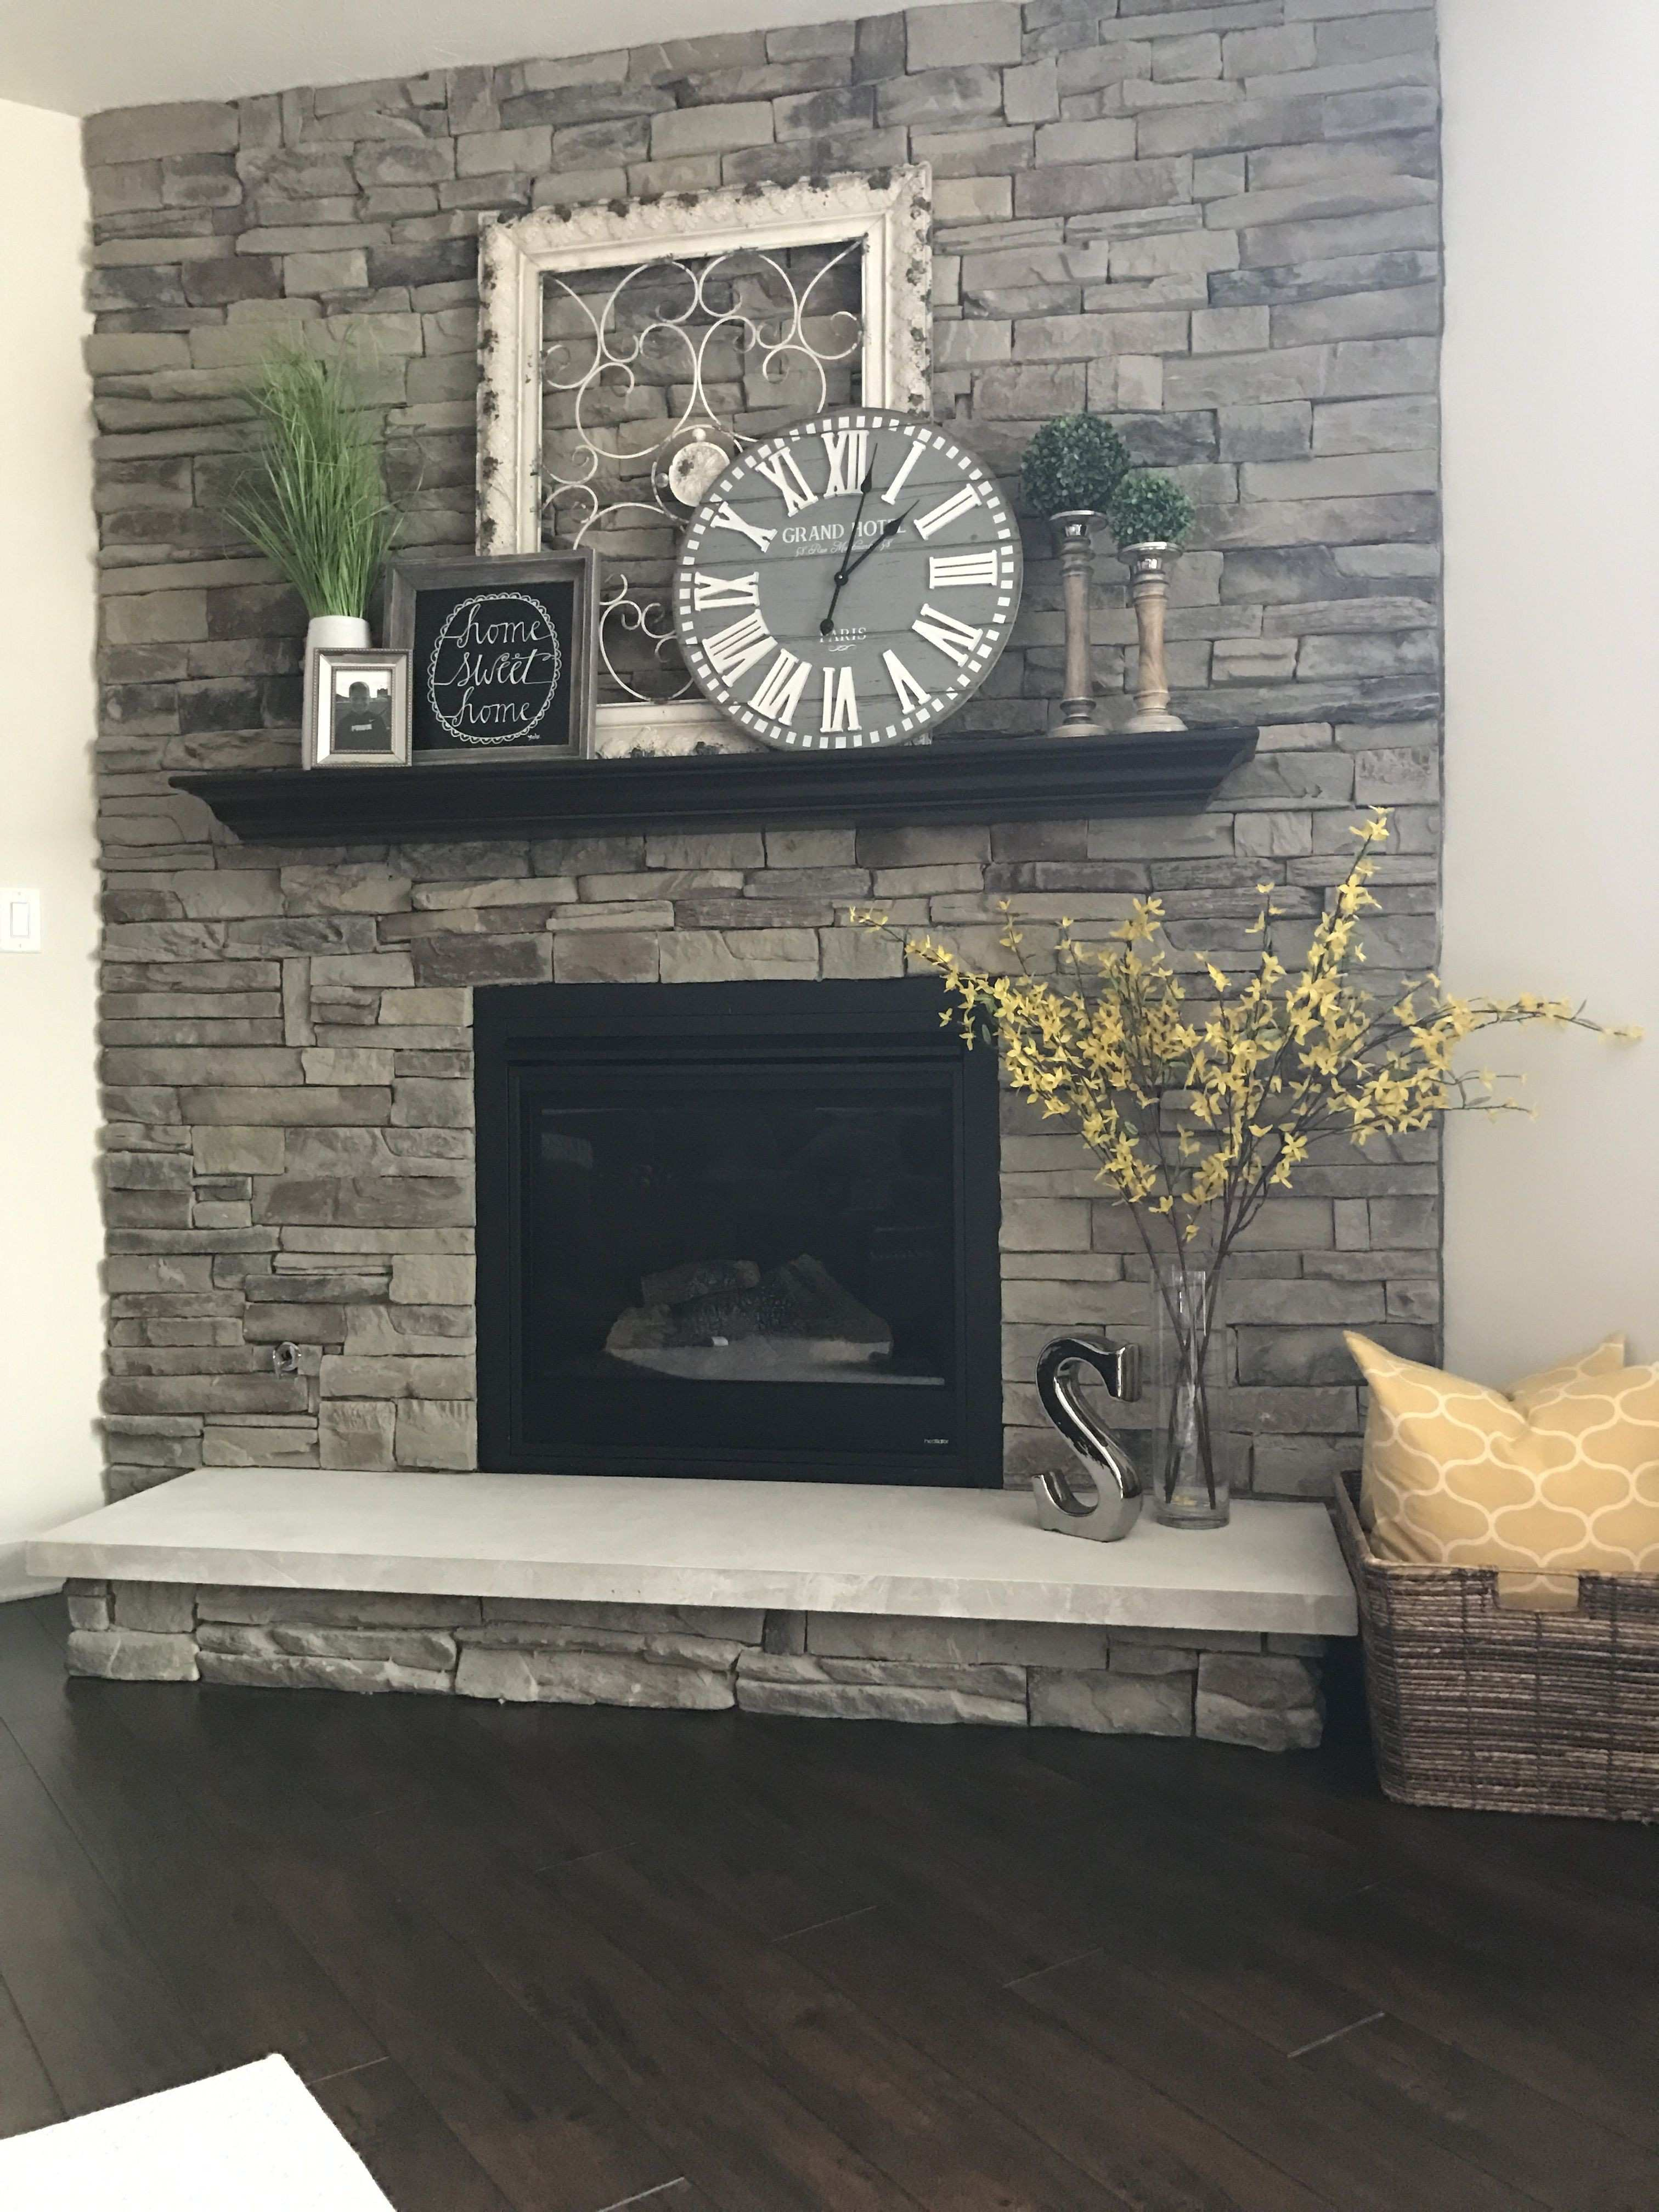 My fireplace Metal Frame Home sign & clock Hobby Lobby Candle